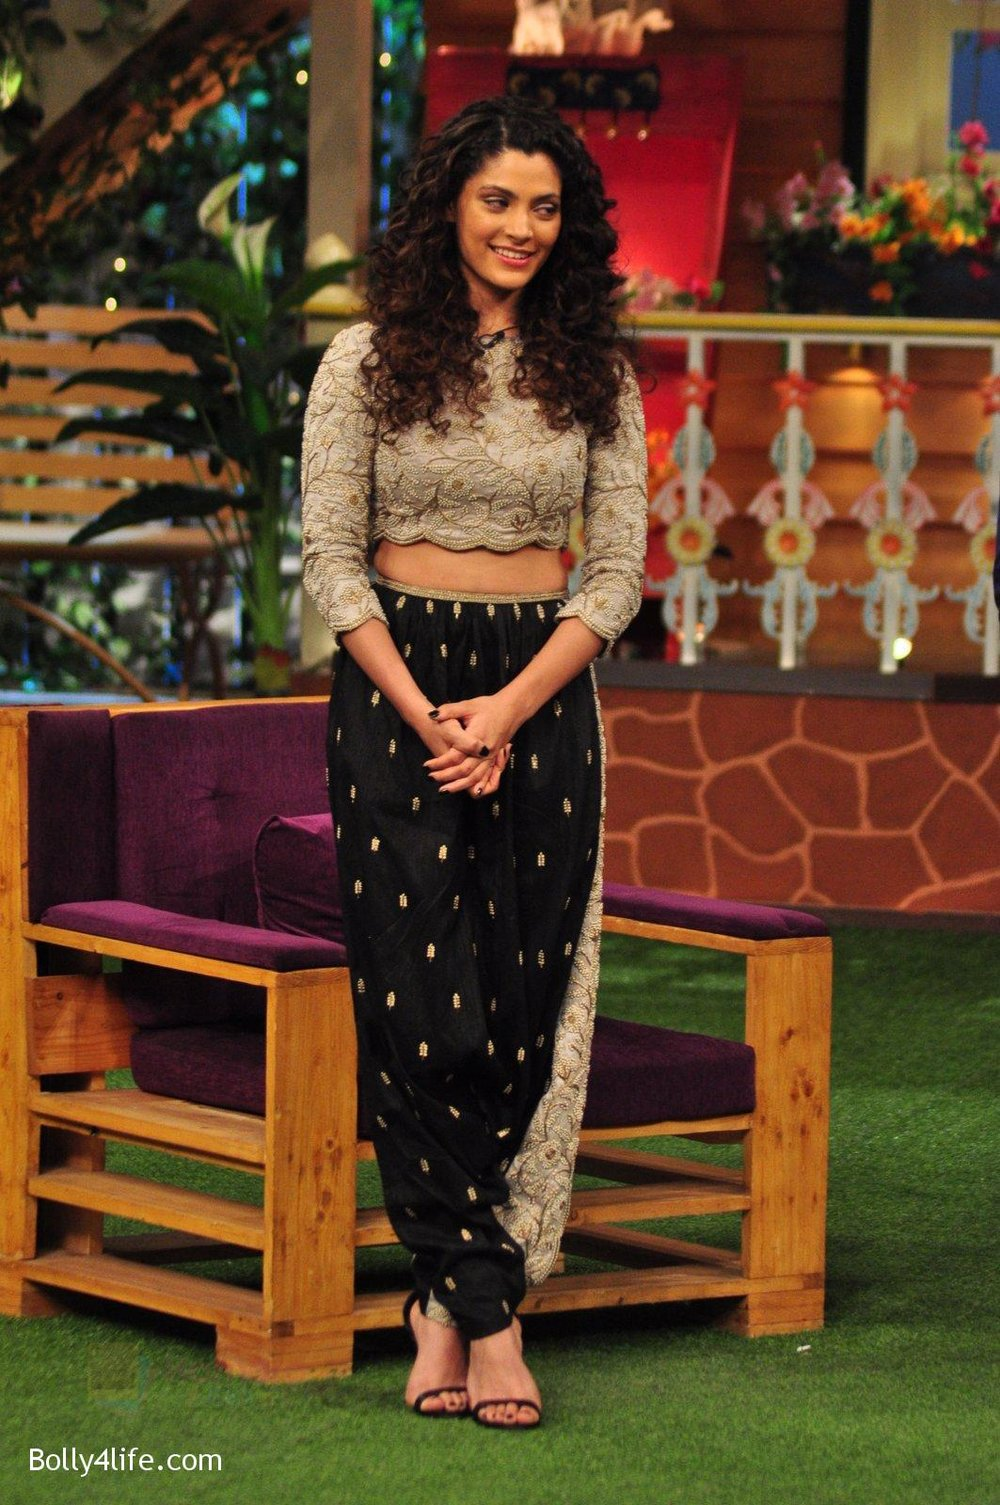 Saiyami-Kher-promotes-Mirzya-on-the-sets-of-The-Kapil-Sharma-Show-on-30th-Sept-2016-98.jpg